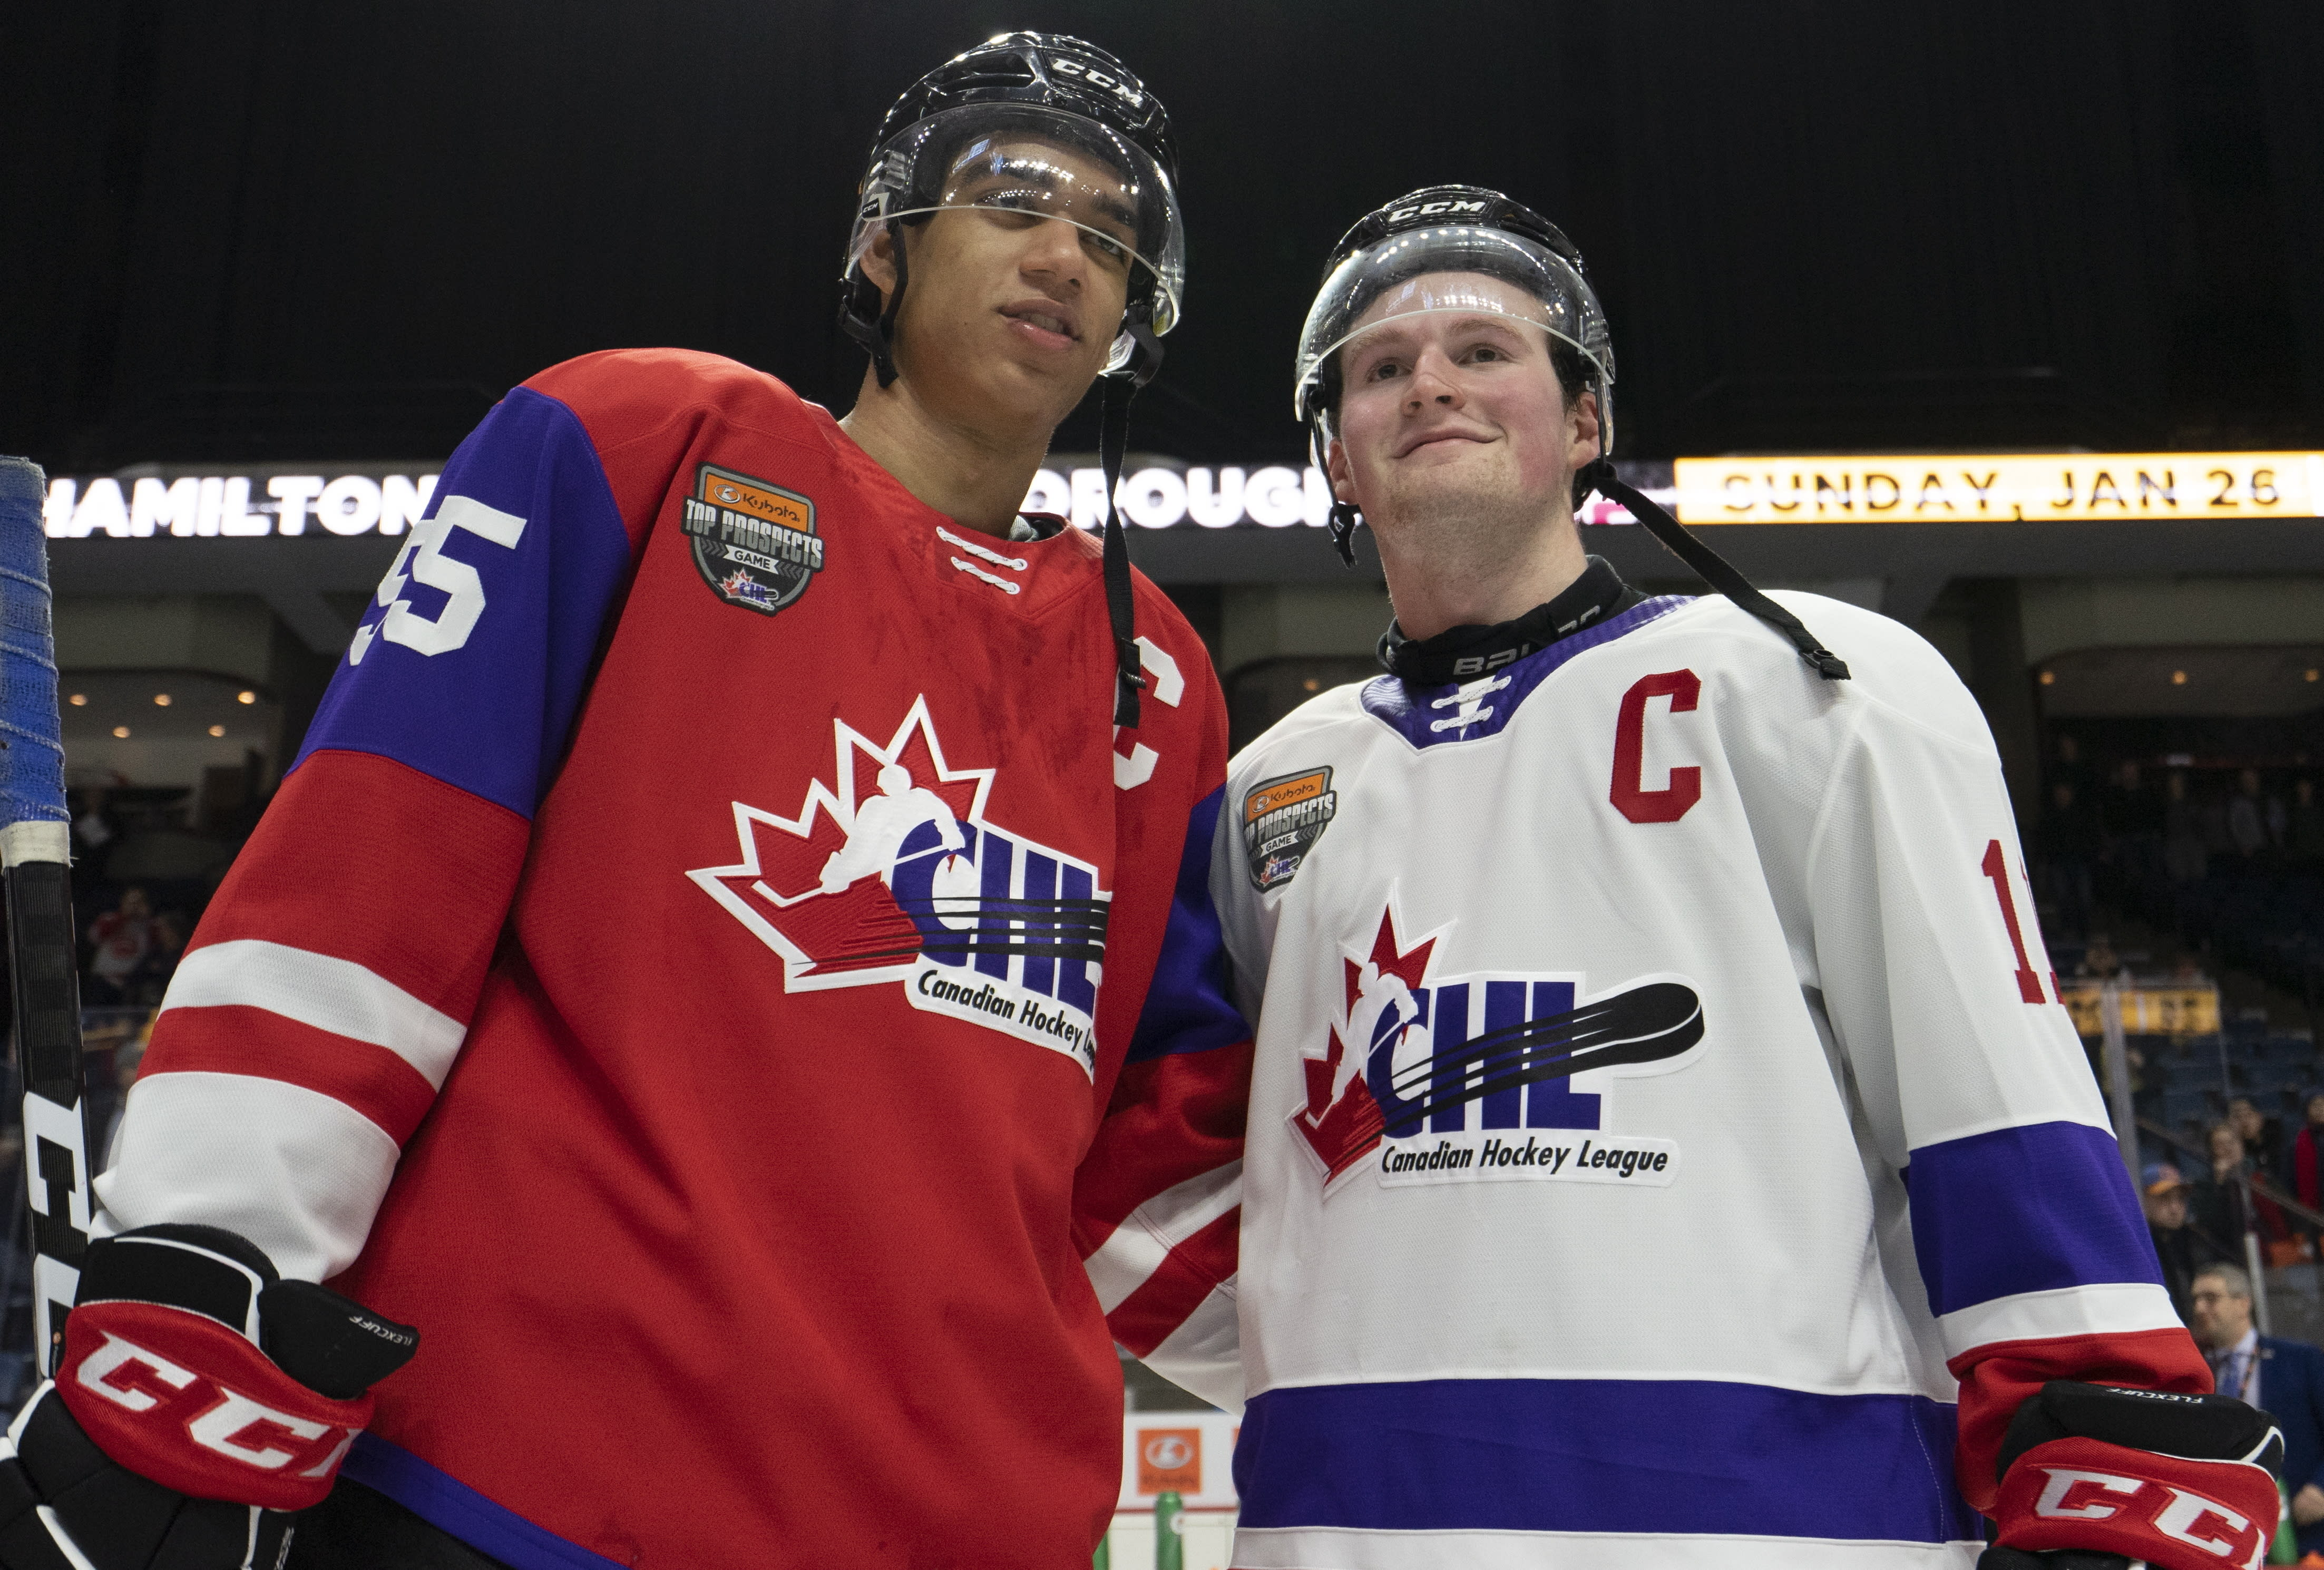 FILE - In this Jan. 16, 2020, file photo, Team Red center Quinton Byfield (55) and Team White left winger Alexis Lafreniere (11) pose for photos following hockey's CHL Top Prospects Game in Hamilton, Ontario. The New York Rangers might be on the clock in owning the No. 1 pick in the NHL draft on Tuesday, Oct. 6. That, and the prospect of selecting Quebec star forward Alexis Lafreniere, doesn't mean the still-retooling Rangers will be anywhere closer to being a contender, team president John Davidson cautions. (Peter Power/The Canadian Press via AP)